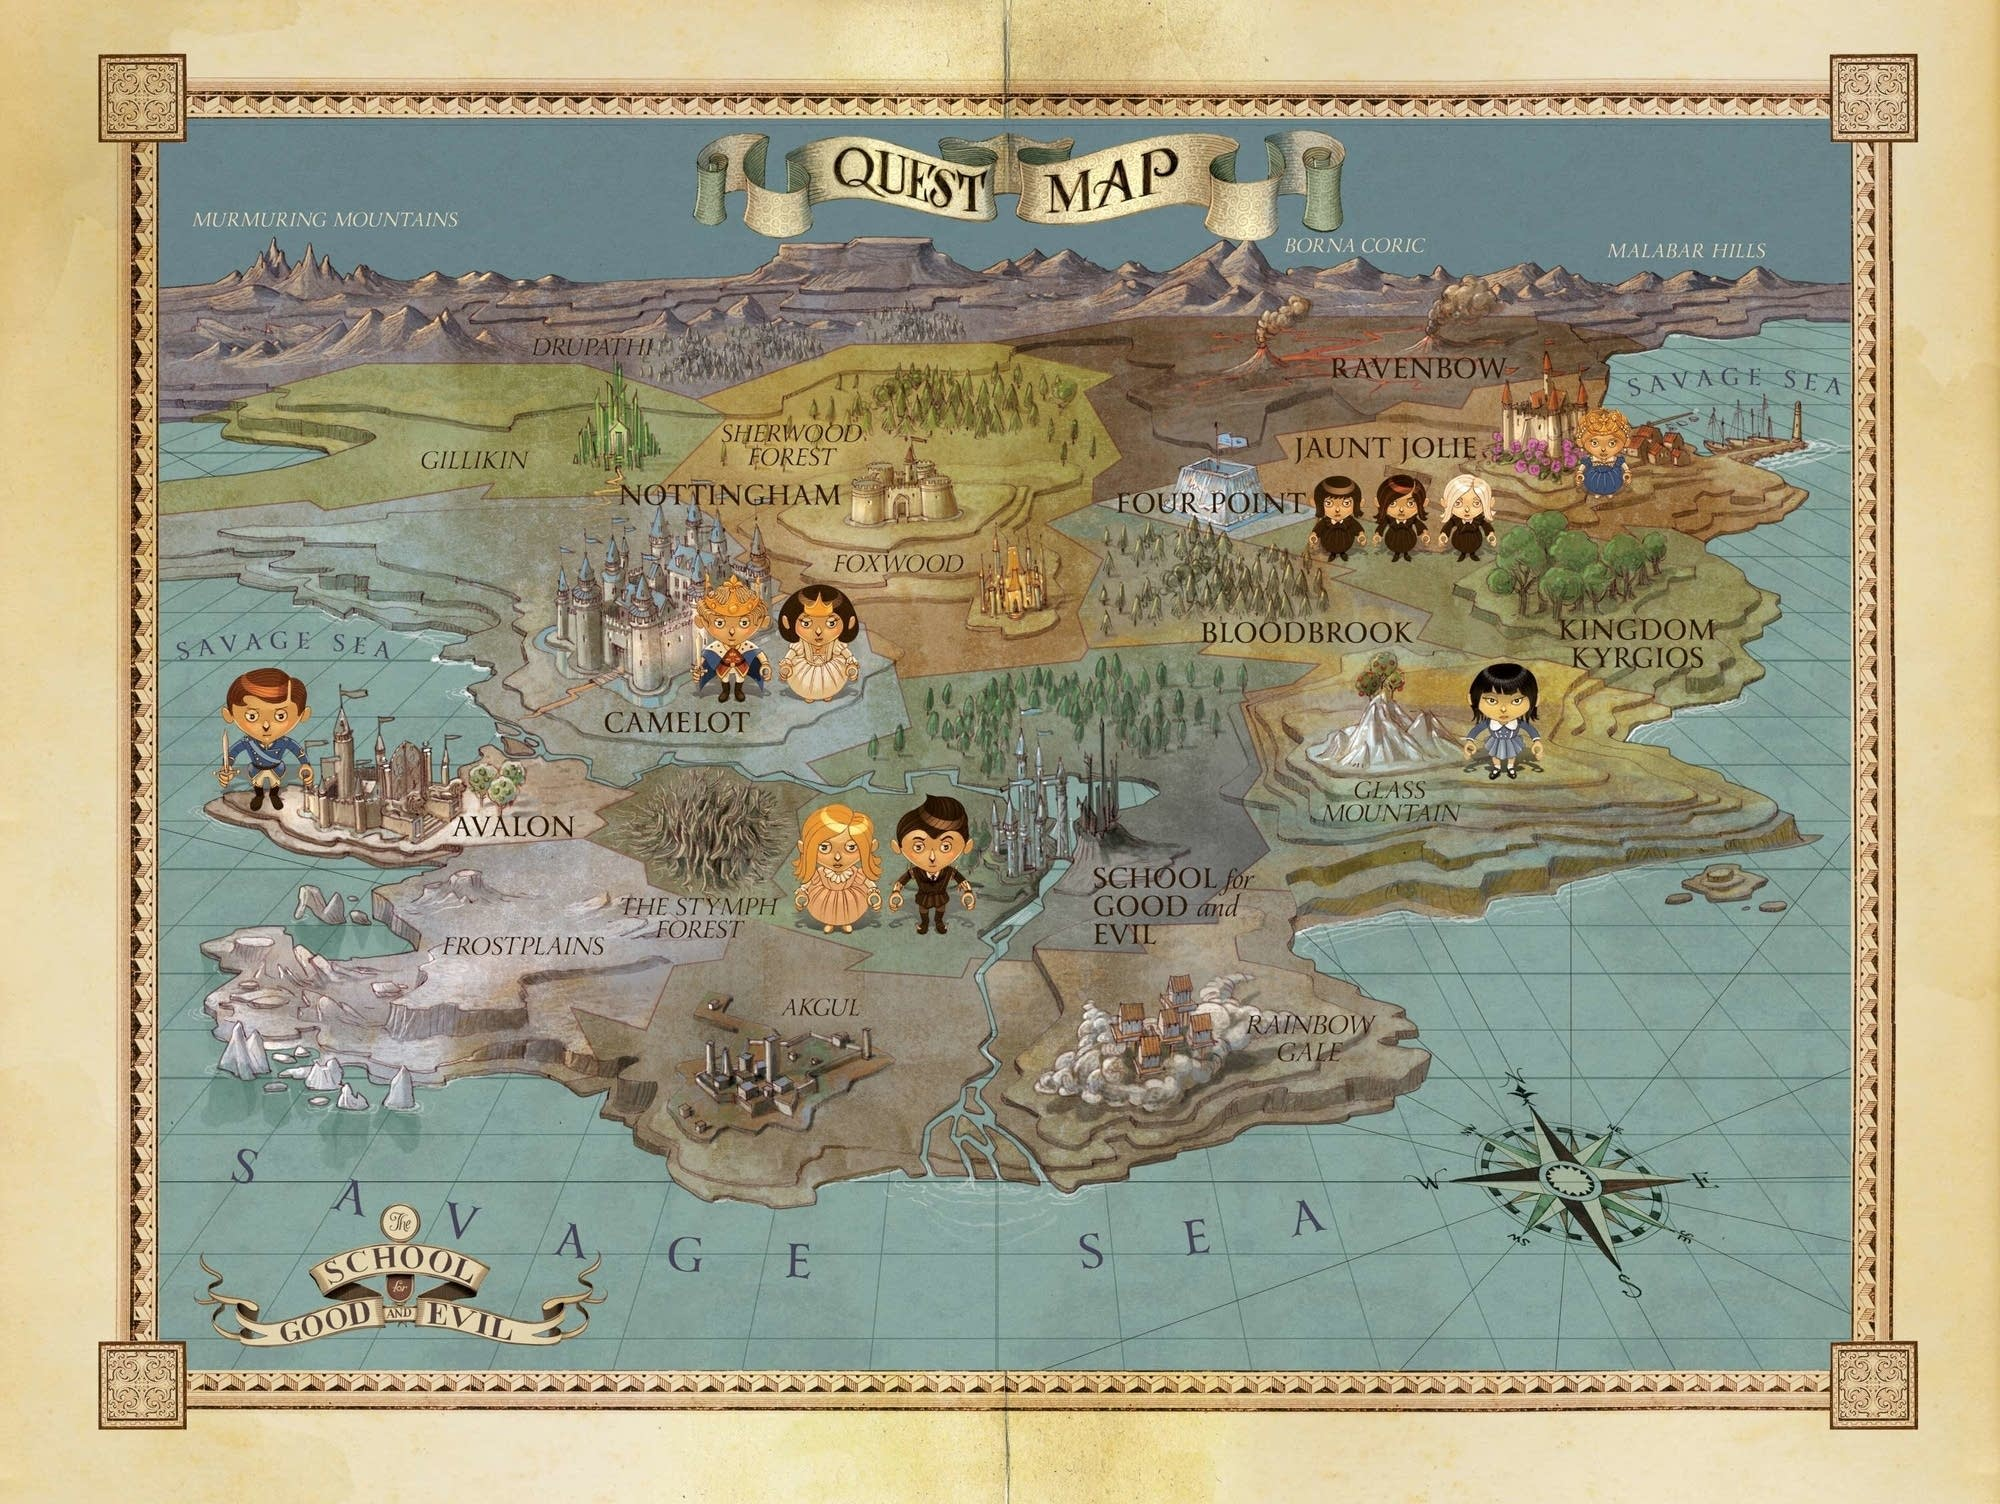 The map of